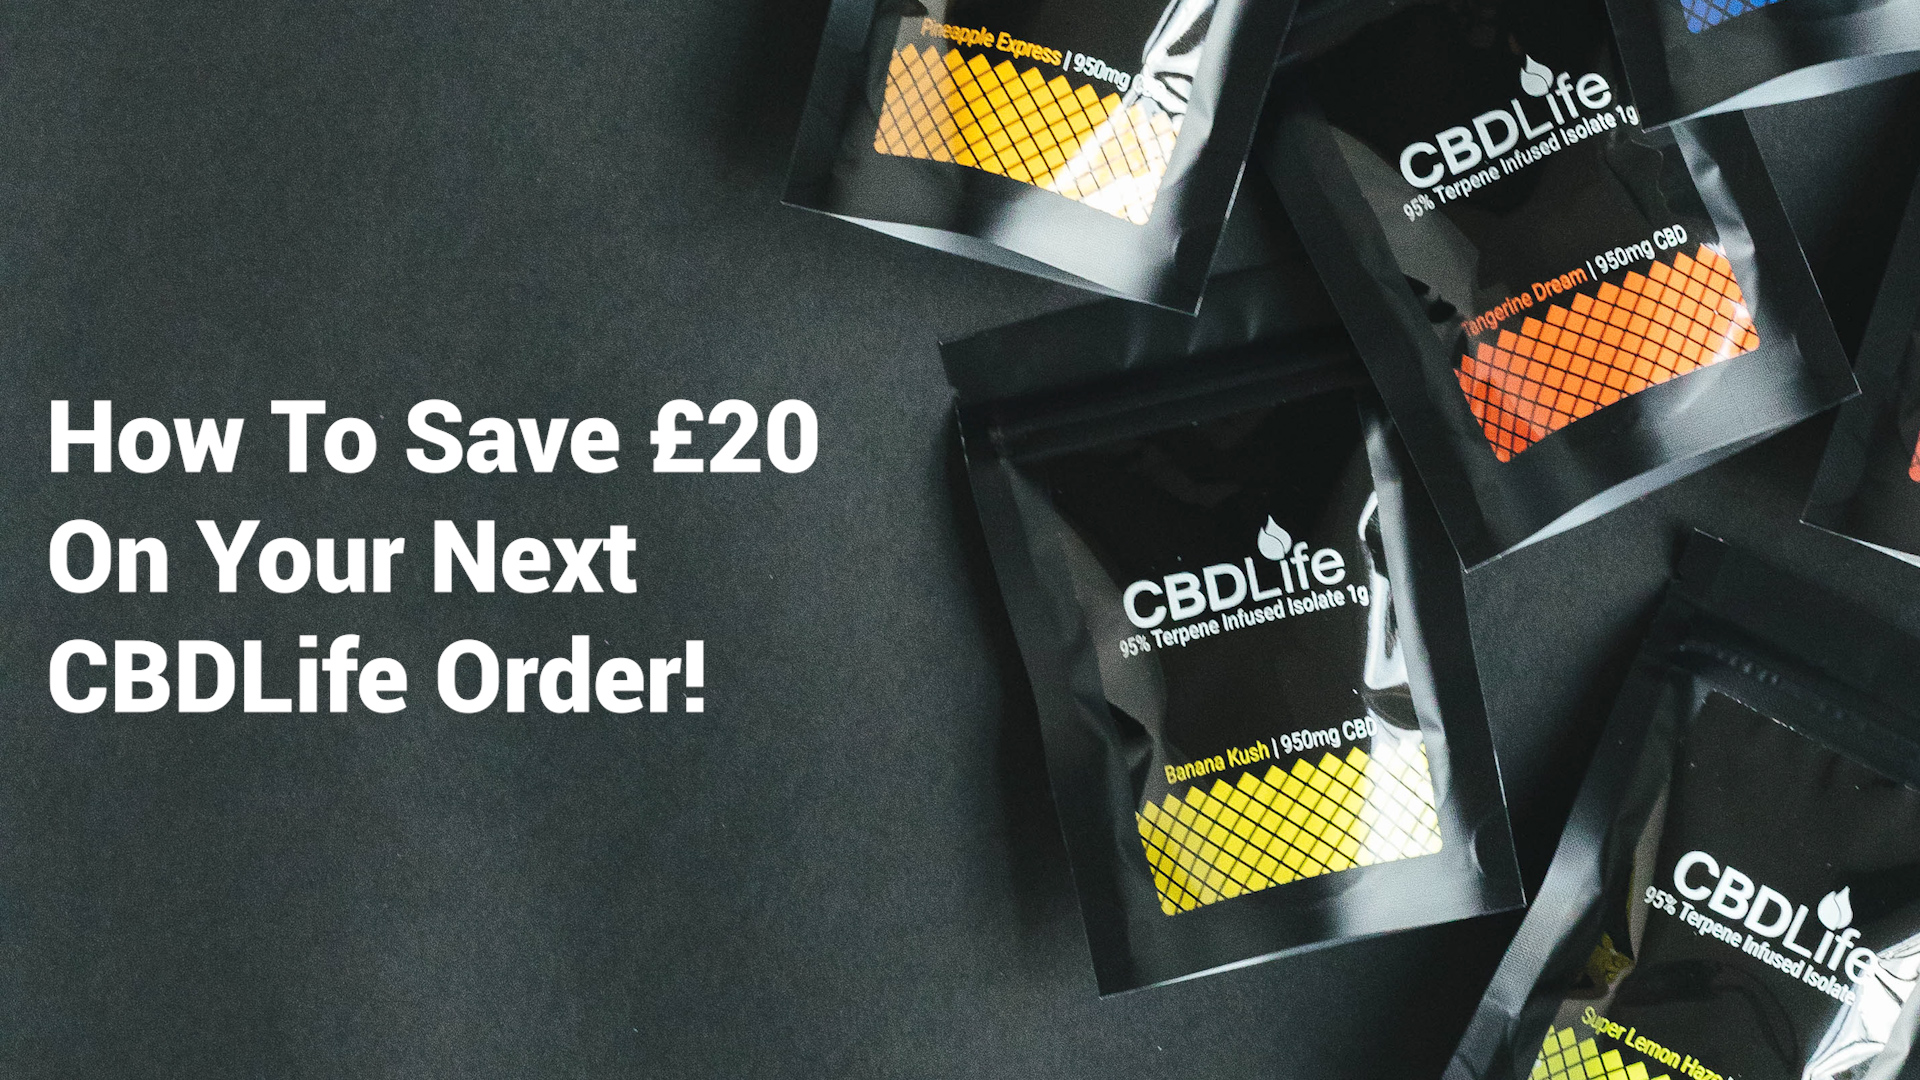 How To Save £20 On Your Next CBDLife Order!